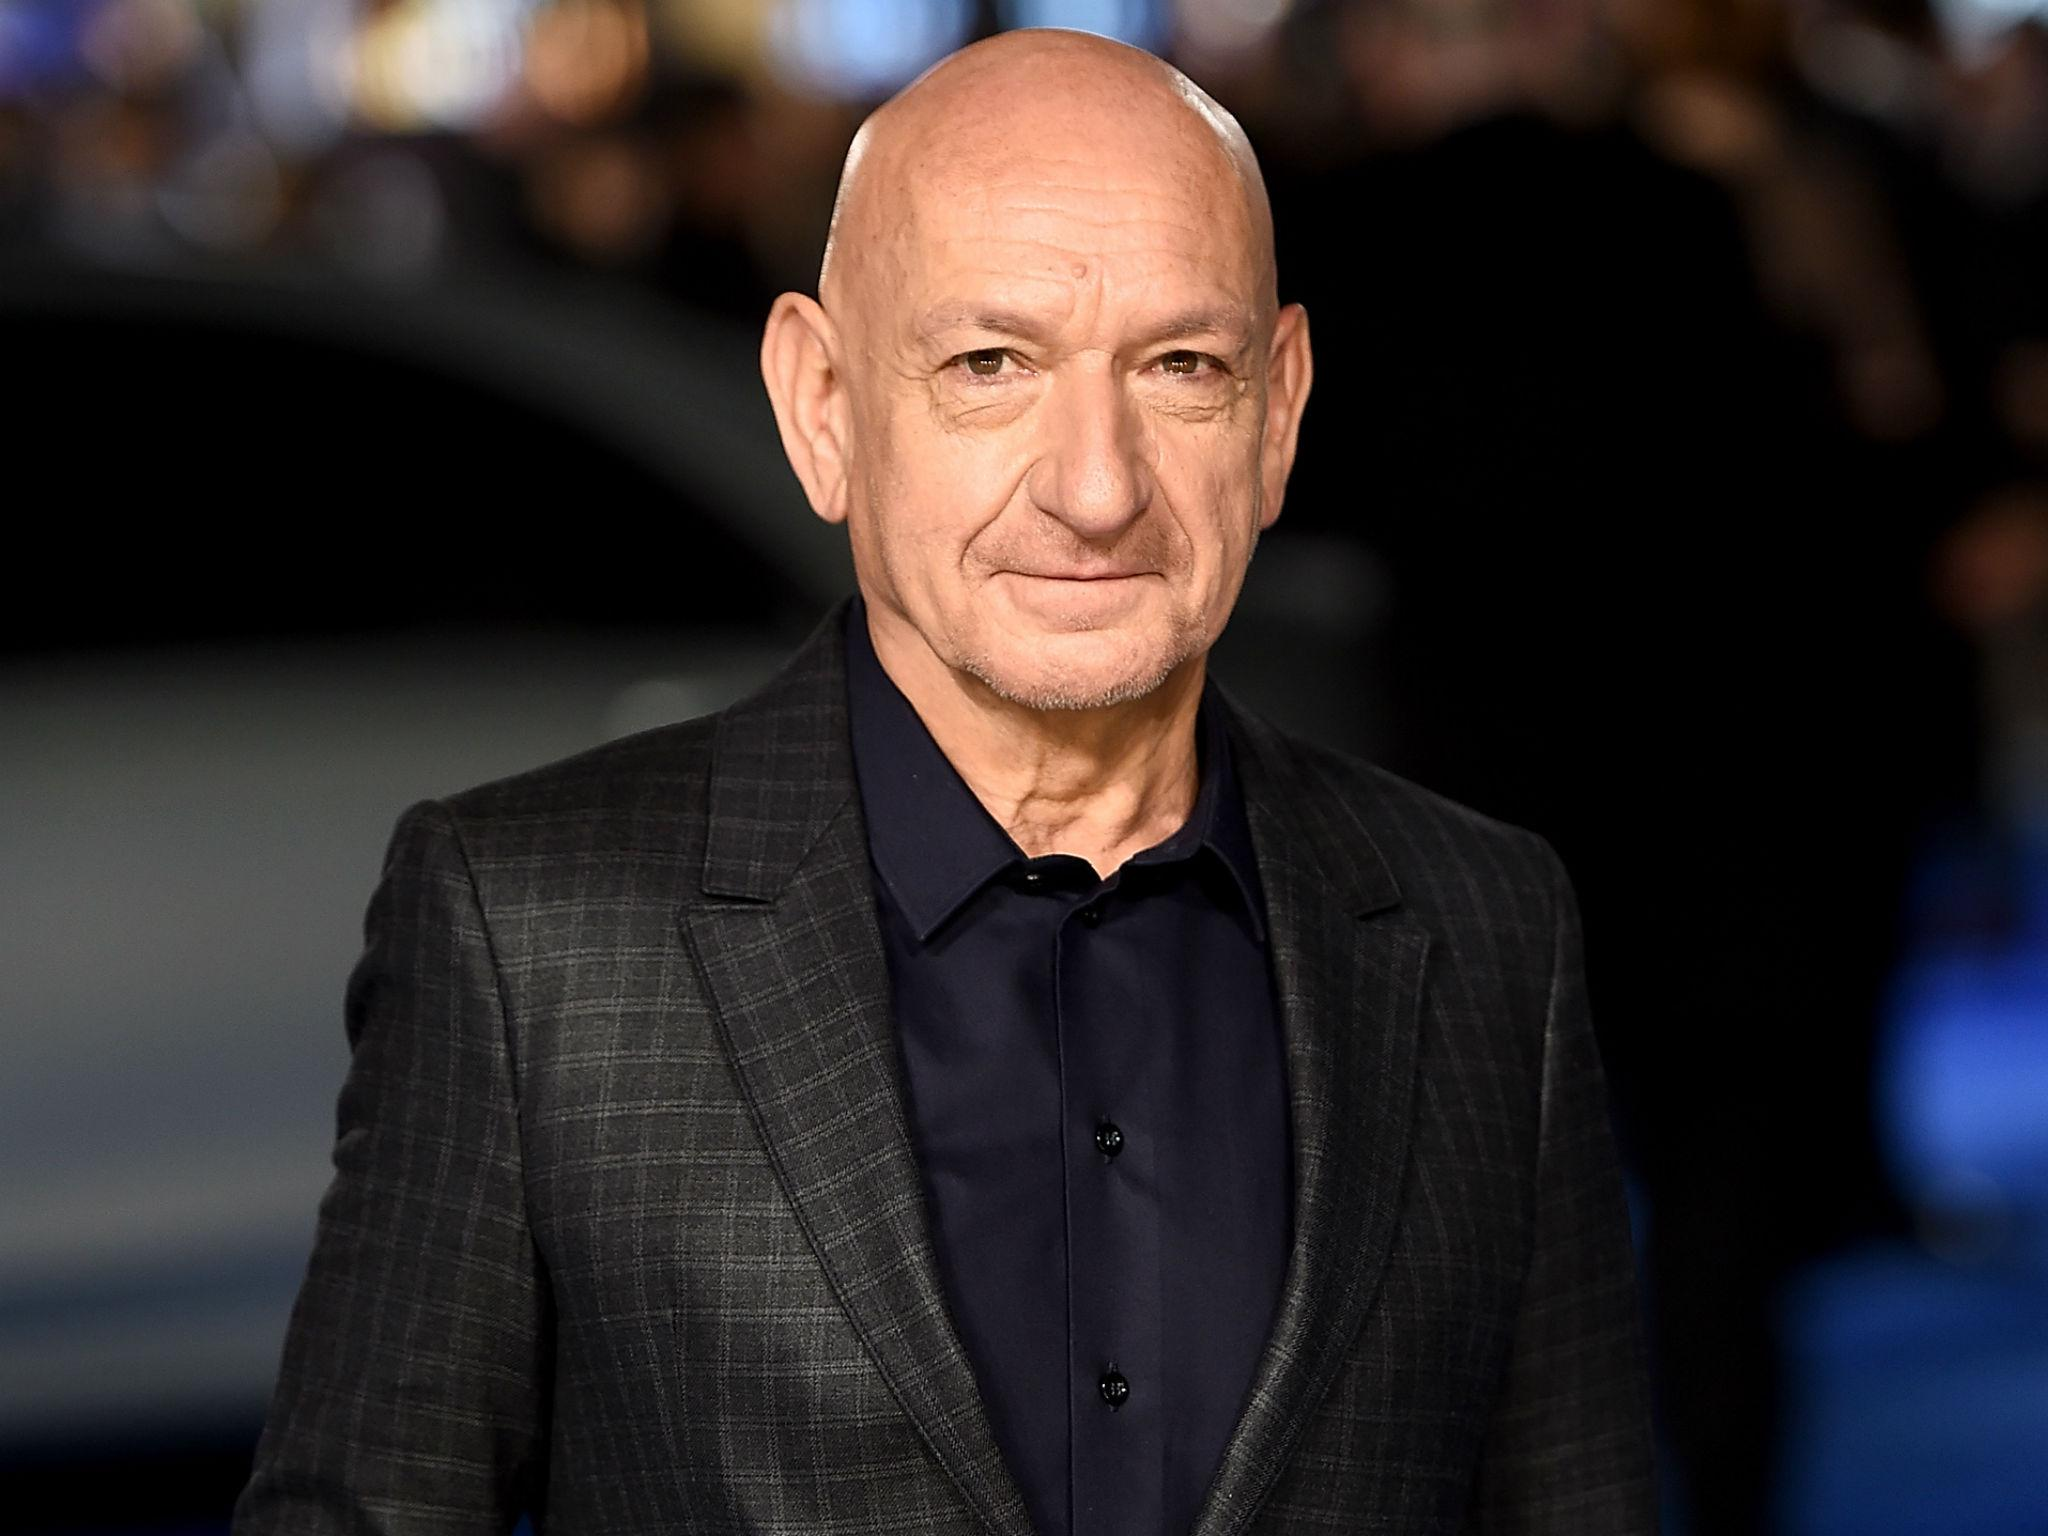 Ben Kingsley Lockdown